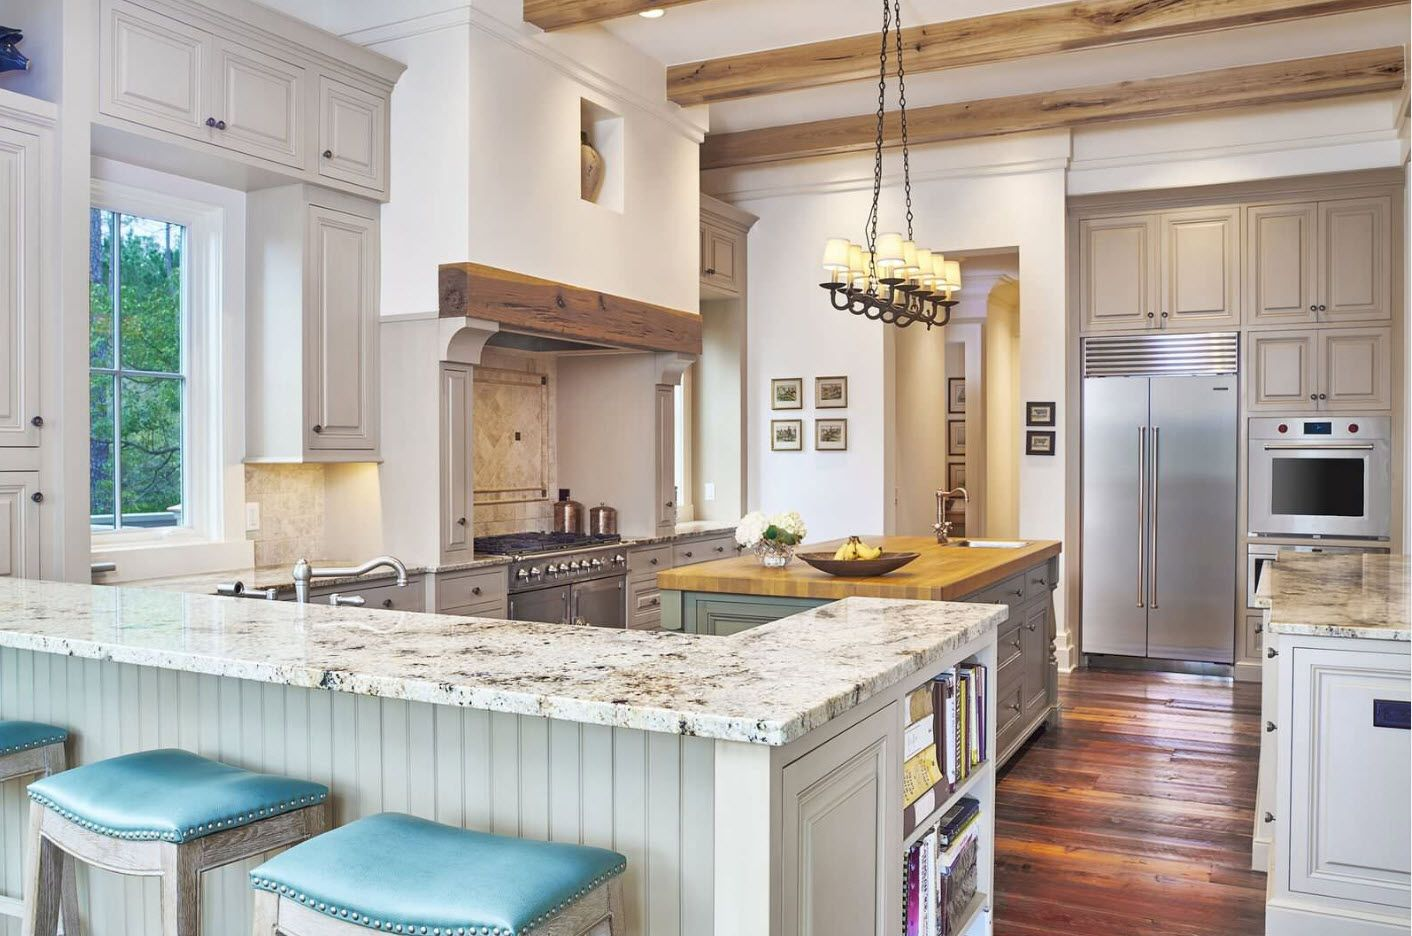 Provence styled kitchen with marble countertops and wooden beams